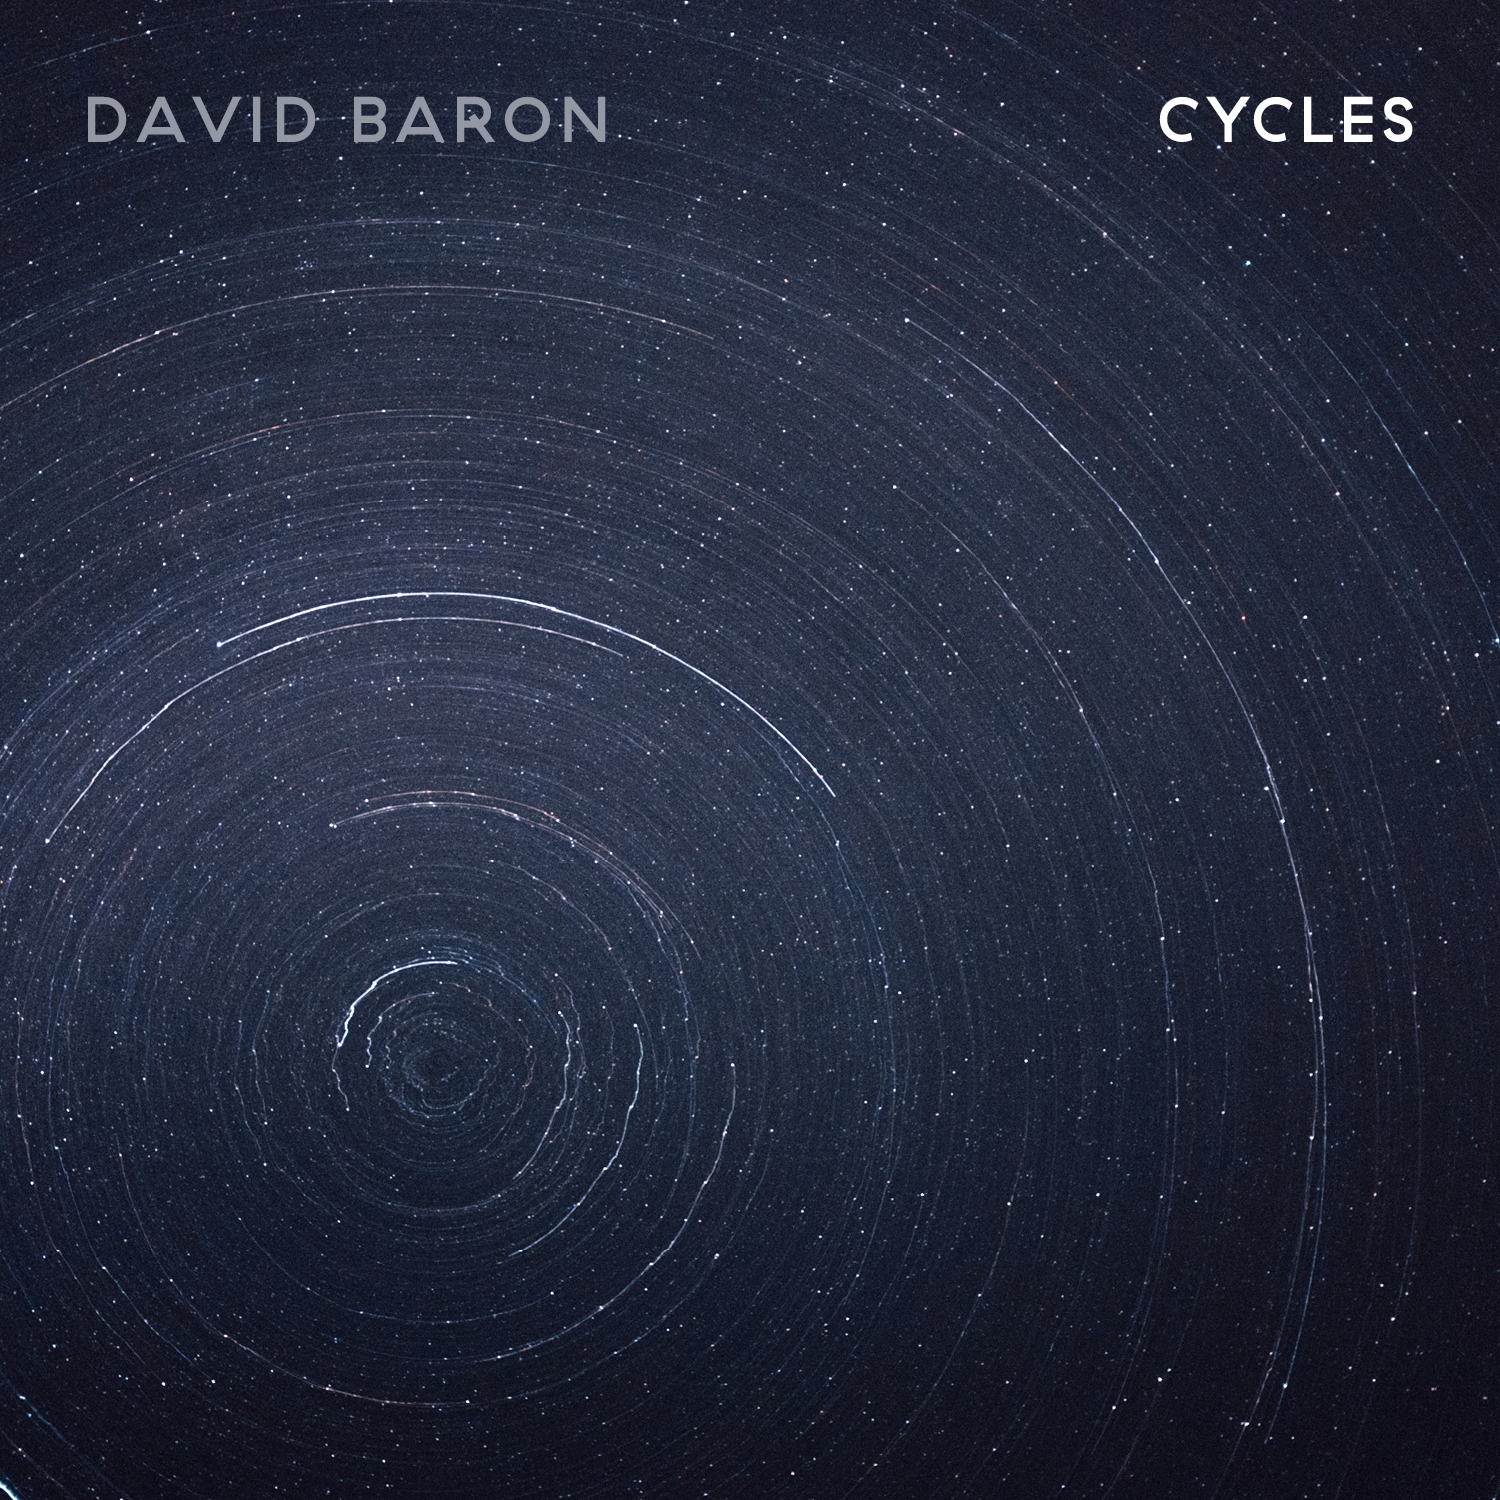 New music from analogue and modular synth authority and collector composer and film soundtrack producer David Baron whose cv includes 20 years with Lenny Kravitz, Jade Bird, Melanie De Biasio, The Lumineers, Bat For Lashes, Vance Joy and Meghan Trainor.